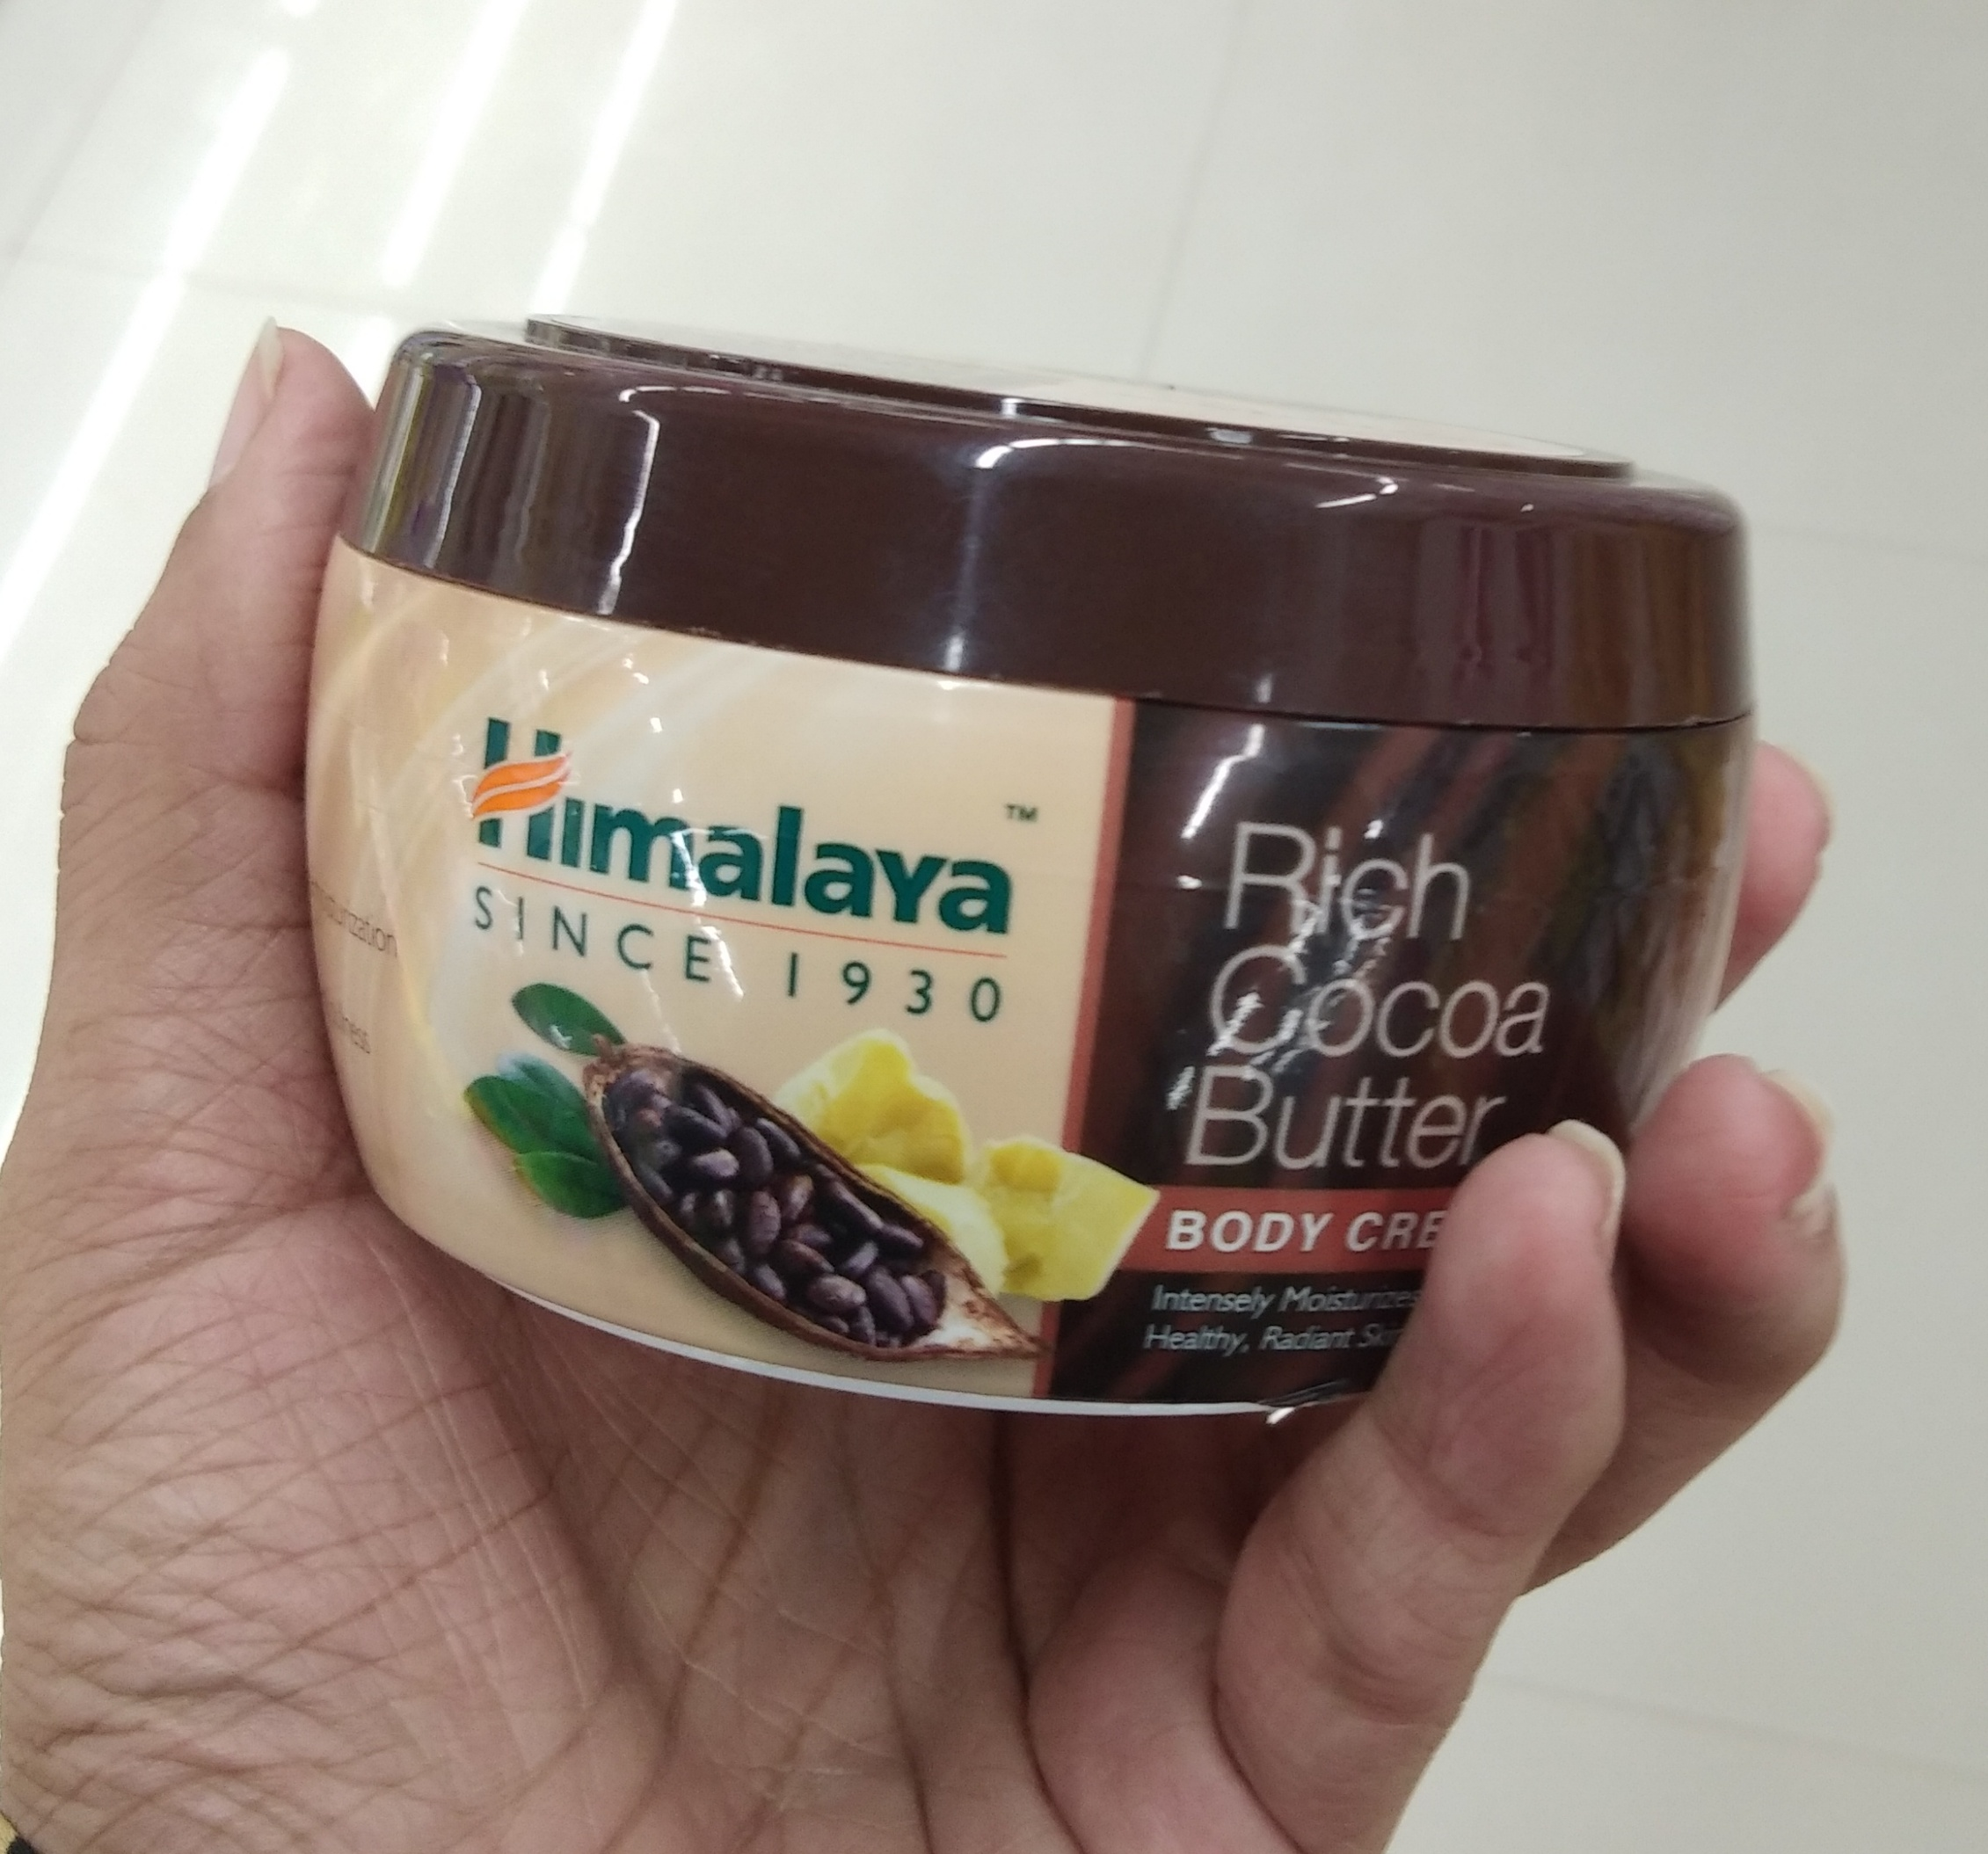 Himalaya Herbals Rich Cocoa Butter Body Cream pic 2-Awesome-By Nasreen